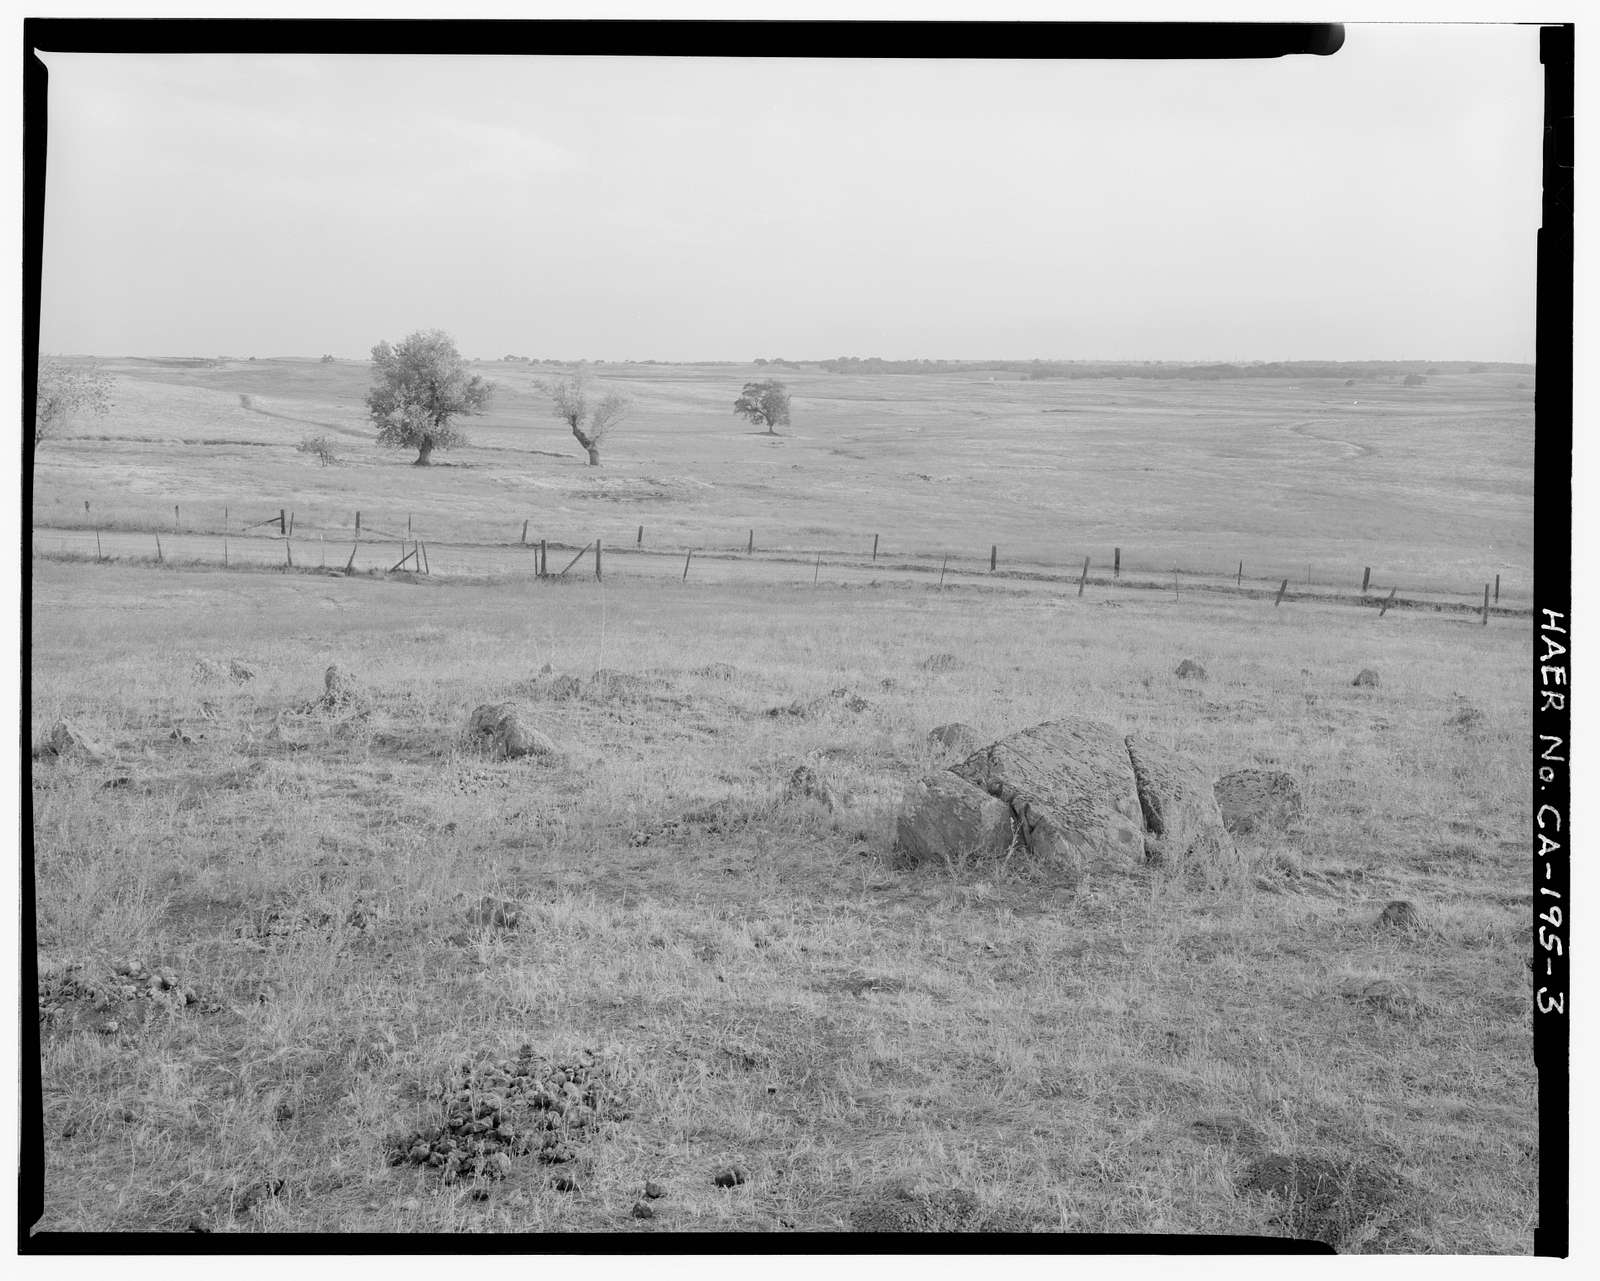 Keefe-McDerby Mine Ditch, East of East Bidwell Street between Clarksville Road & Highway 50, Folsom, Sacramento County, CA